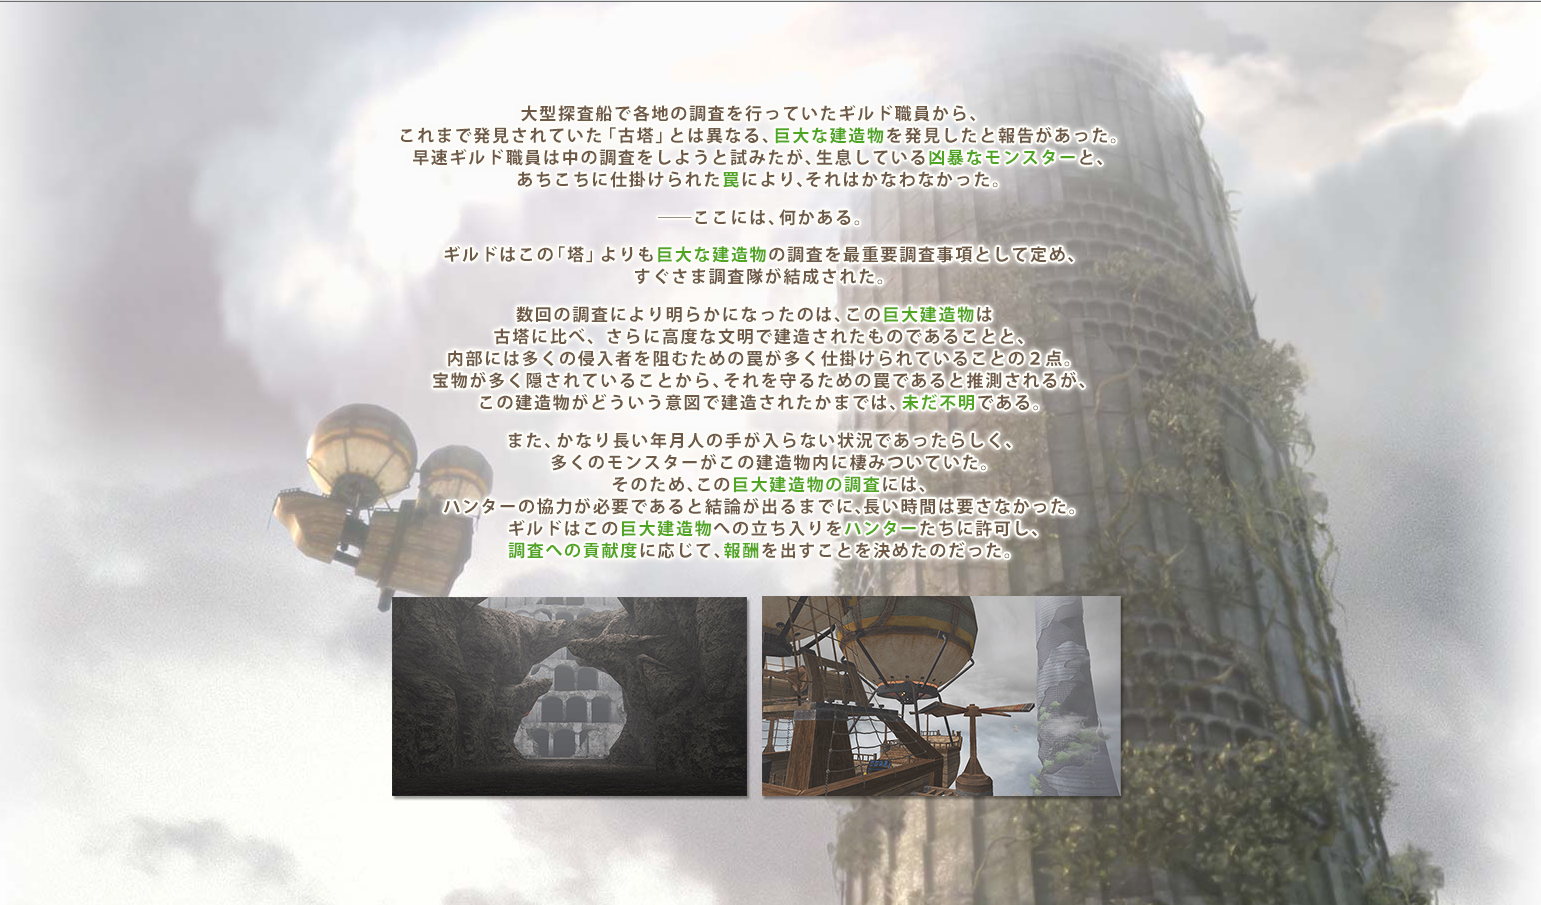 20140920020714756.png